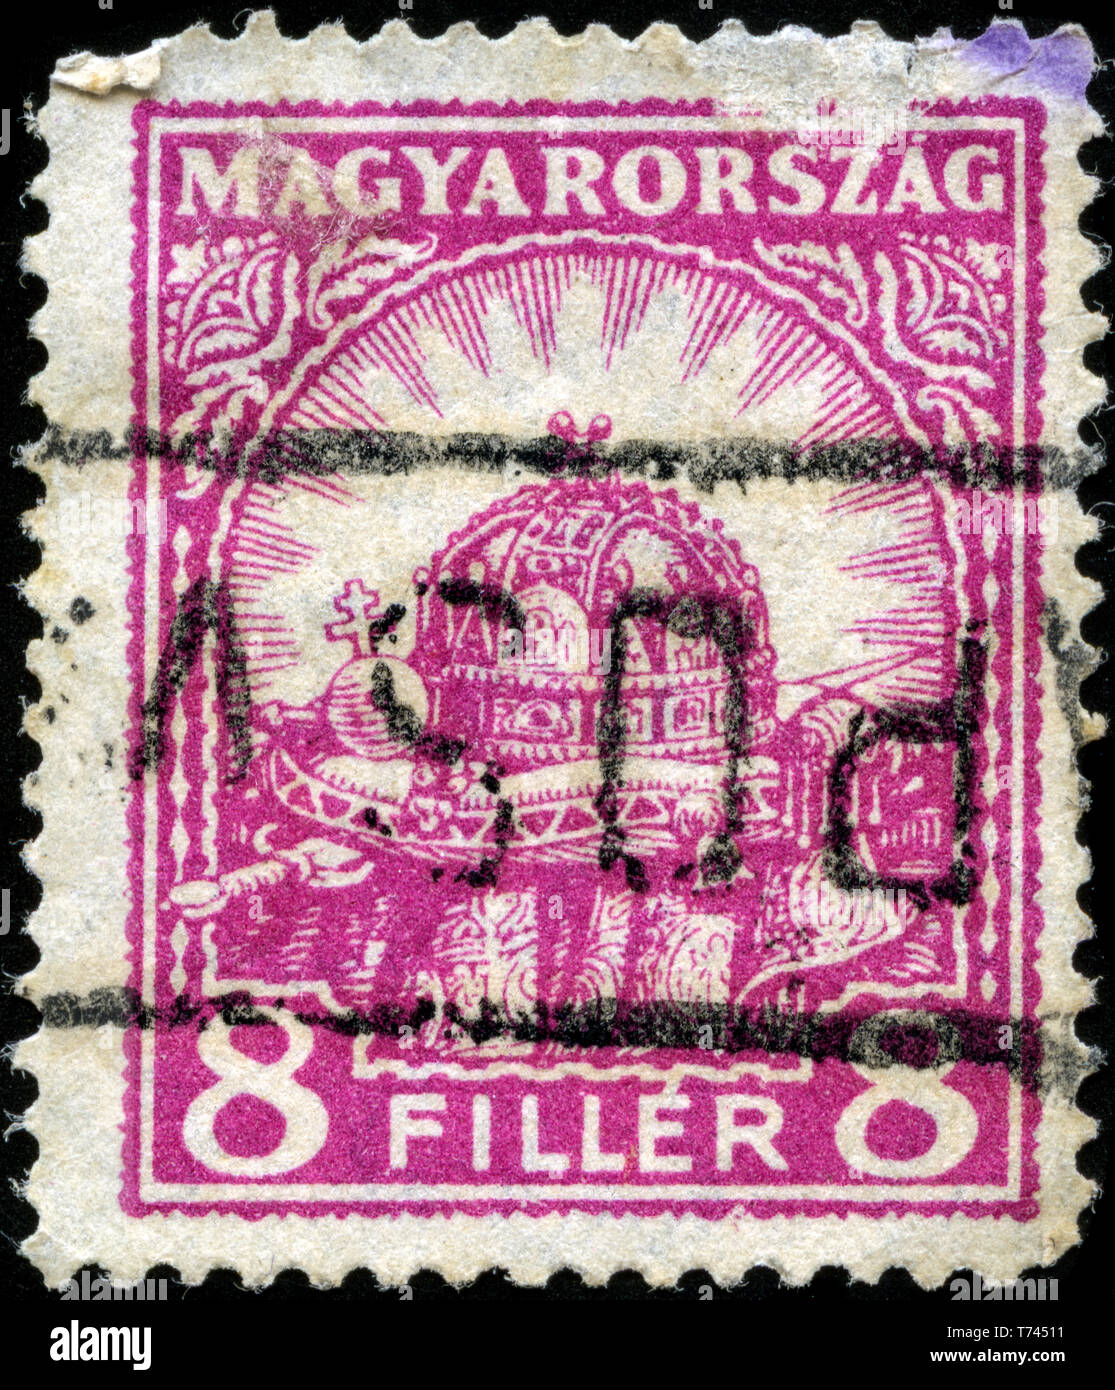 Postage stamp from Hungary in the Holy Crown of Hungary series issued in 1926 Stock Photo